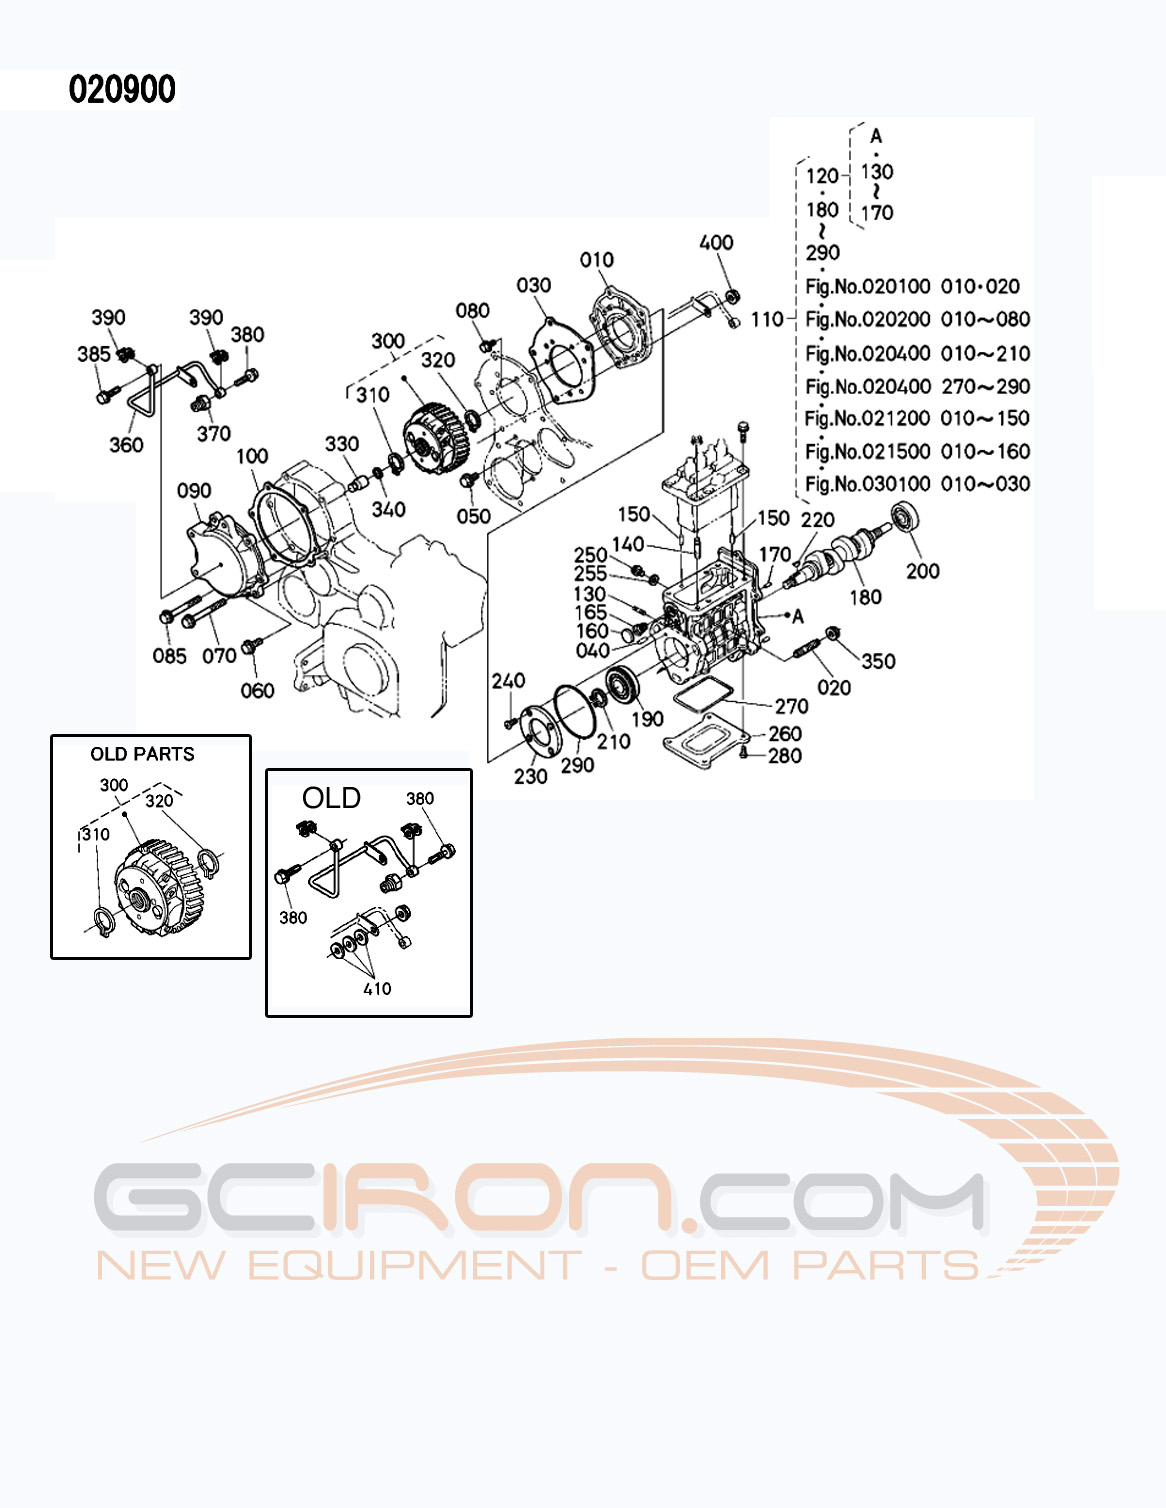 2910V3600E3B116_1 construction equipment parts jlg parts from www gciron com kubota d722 wiring diagram at gsmx.co